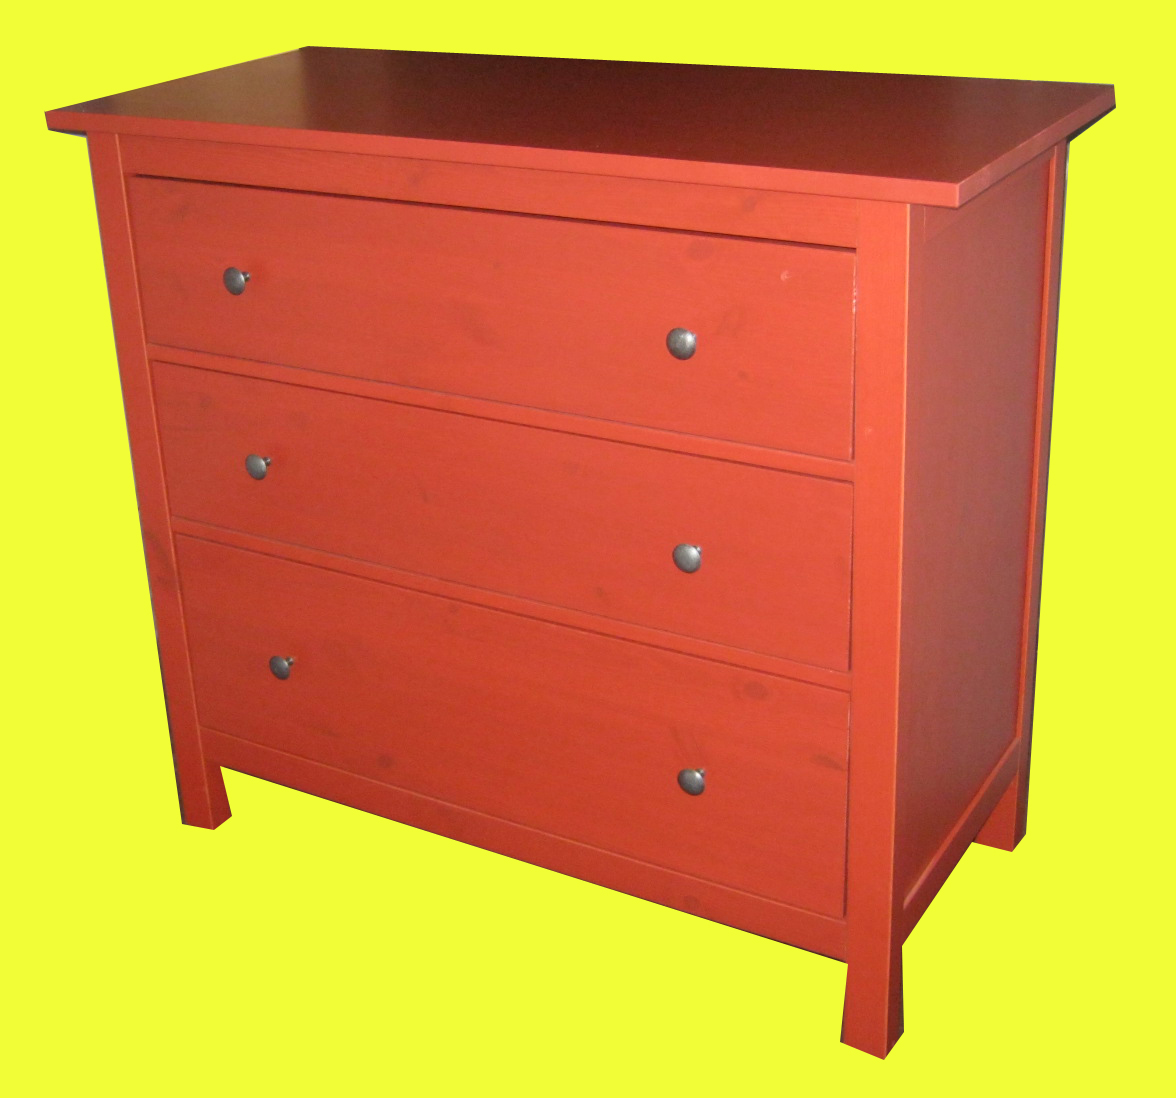 uhuru furniture collectibles ikea hemnes red dresser sold. Black Bedroom Furniture Sets. Home Design Ideas